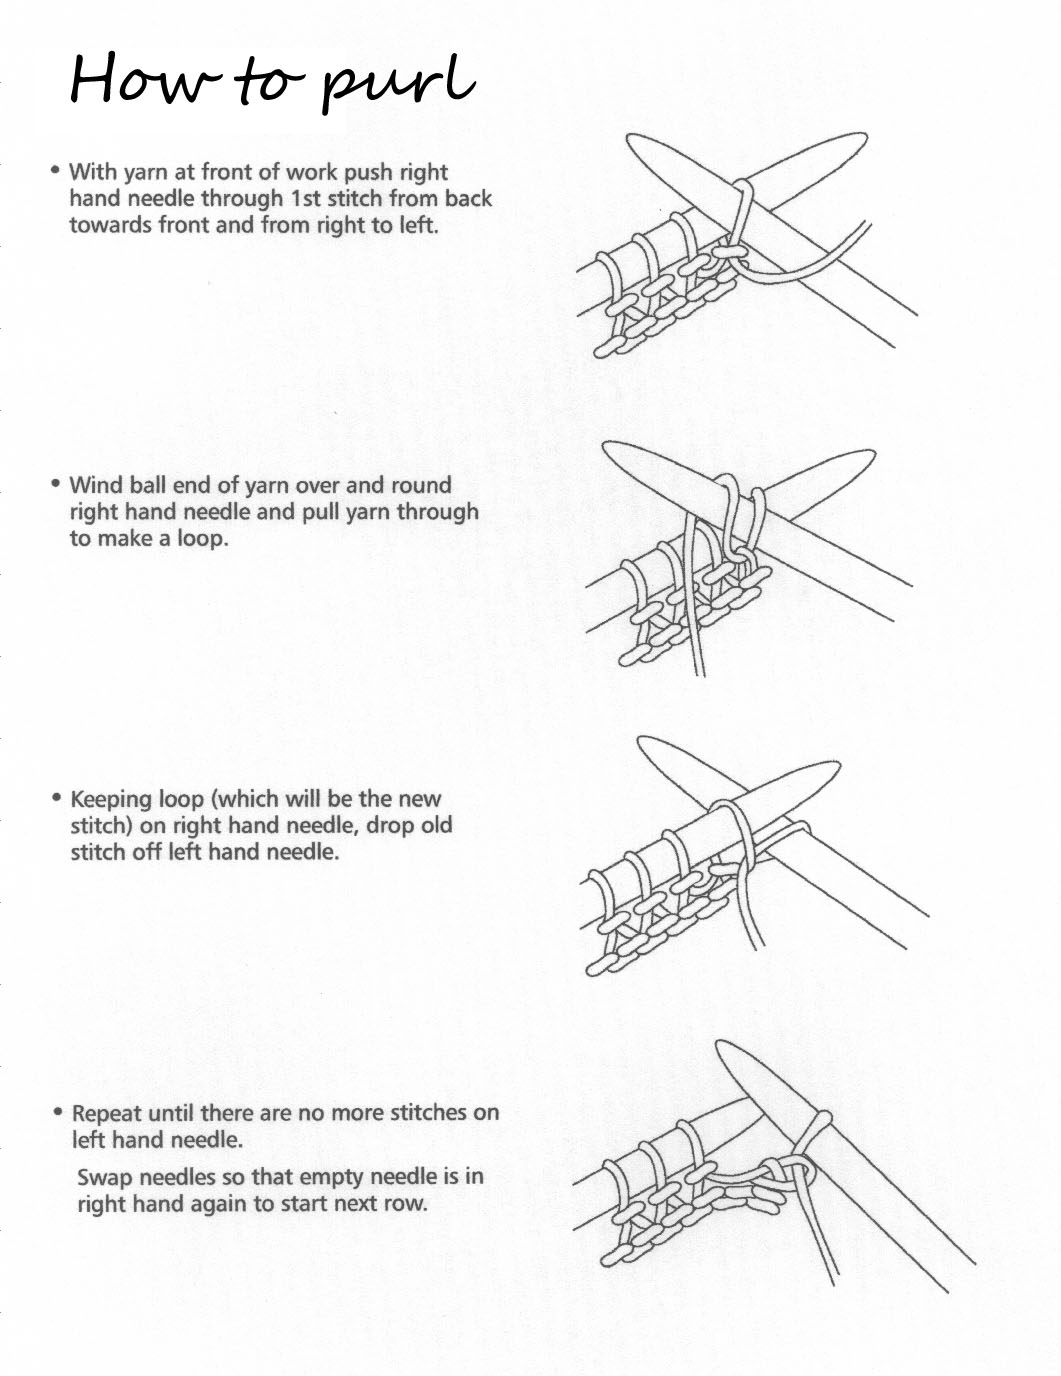 Knitting Stitches How To : HOW TO KNIT.